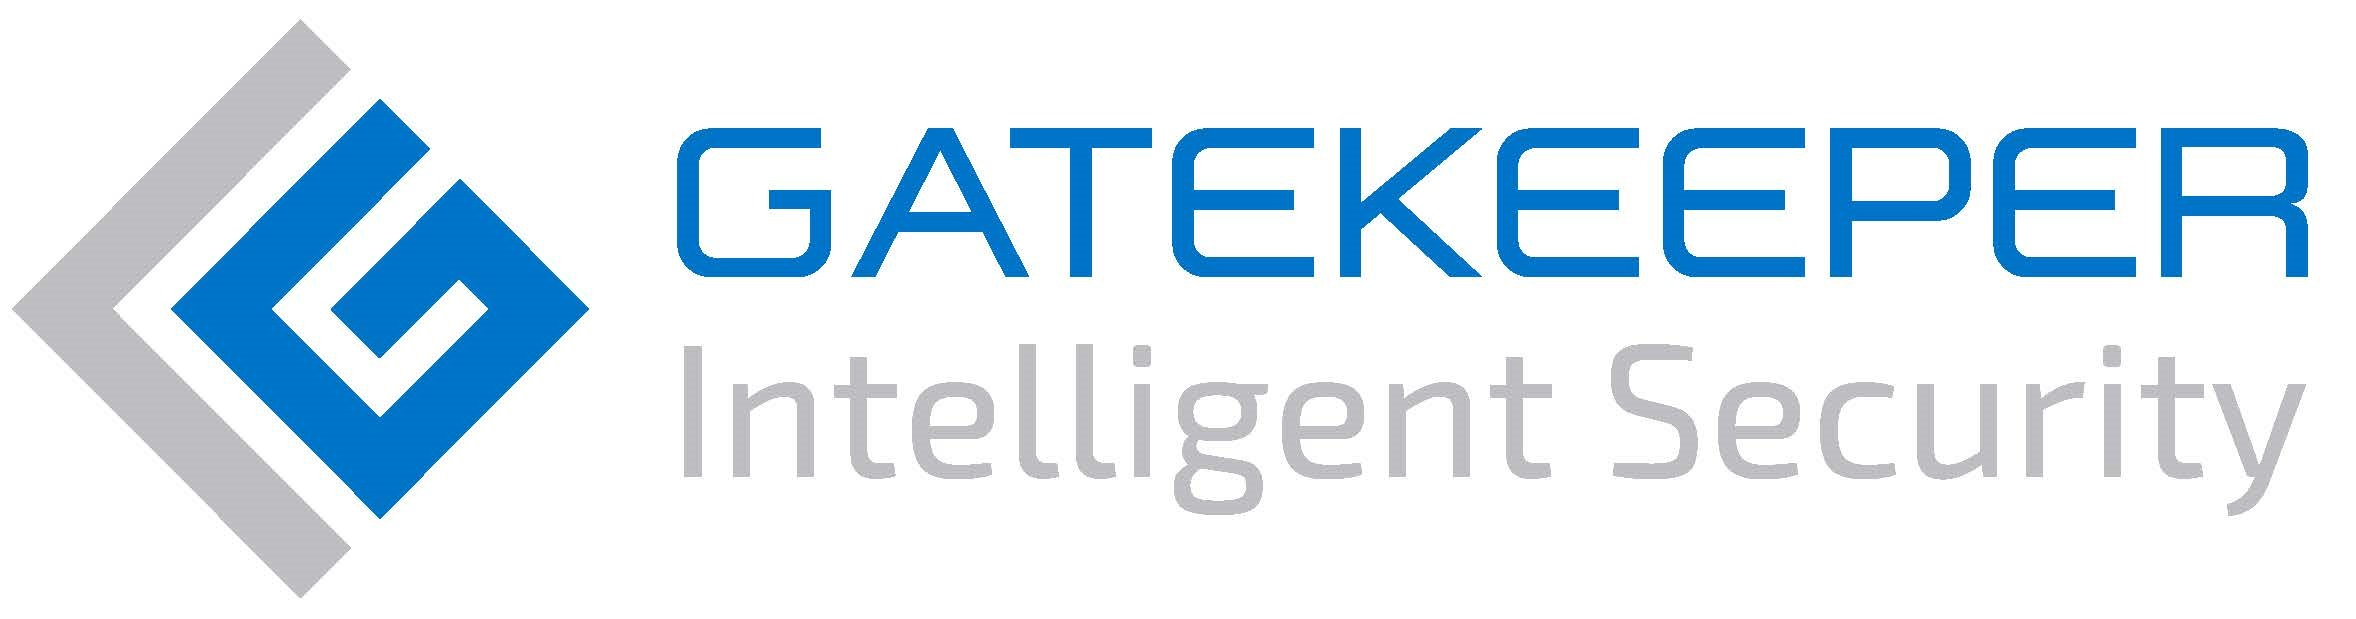 Gate Keeper Intelligent Security Logo